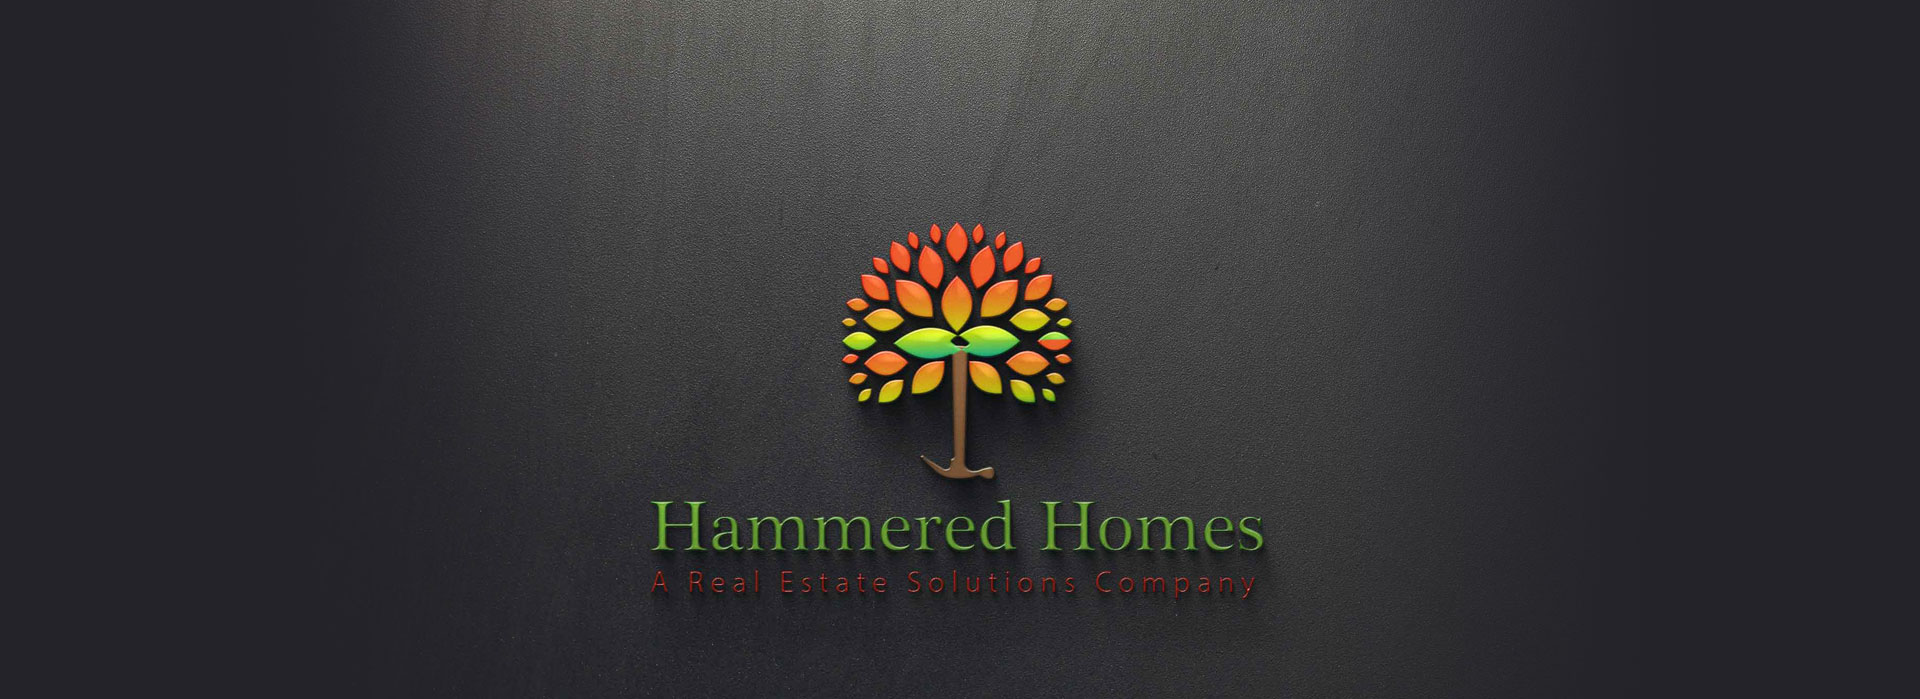 Hammered Homes, LLC Real Estate Solutions, Home Renovations and Home Buyers